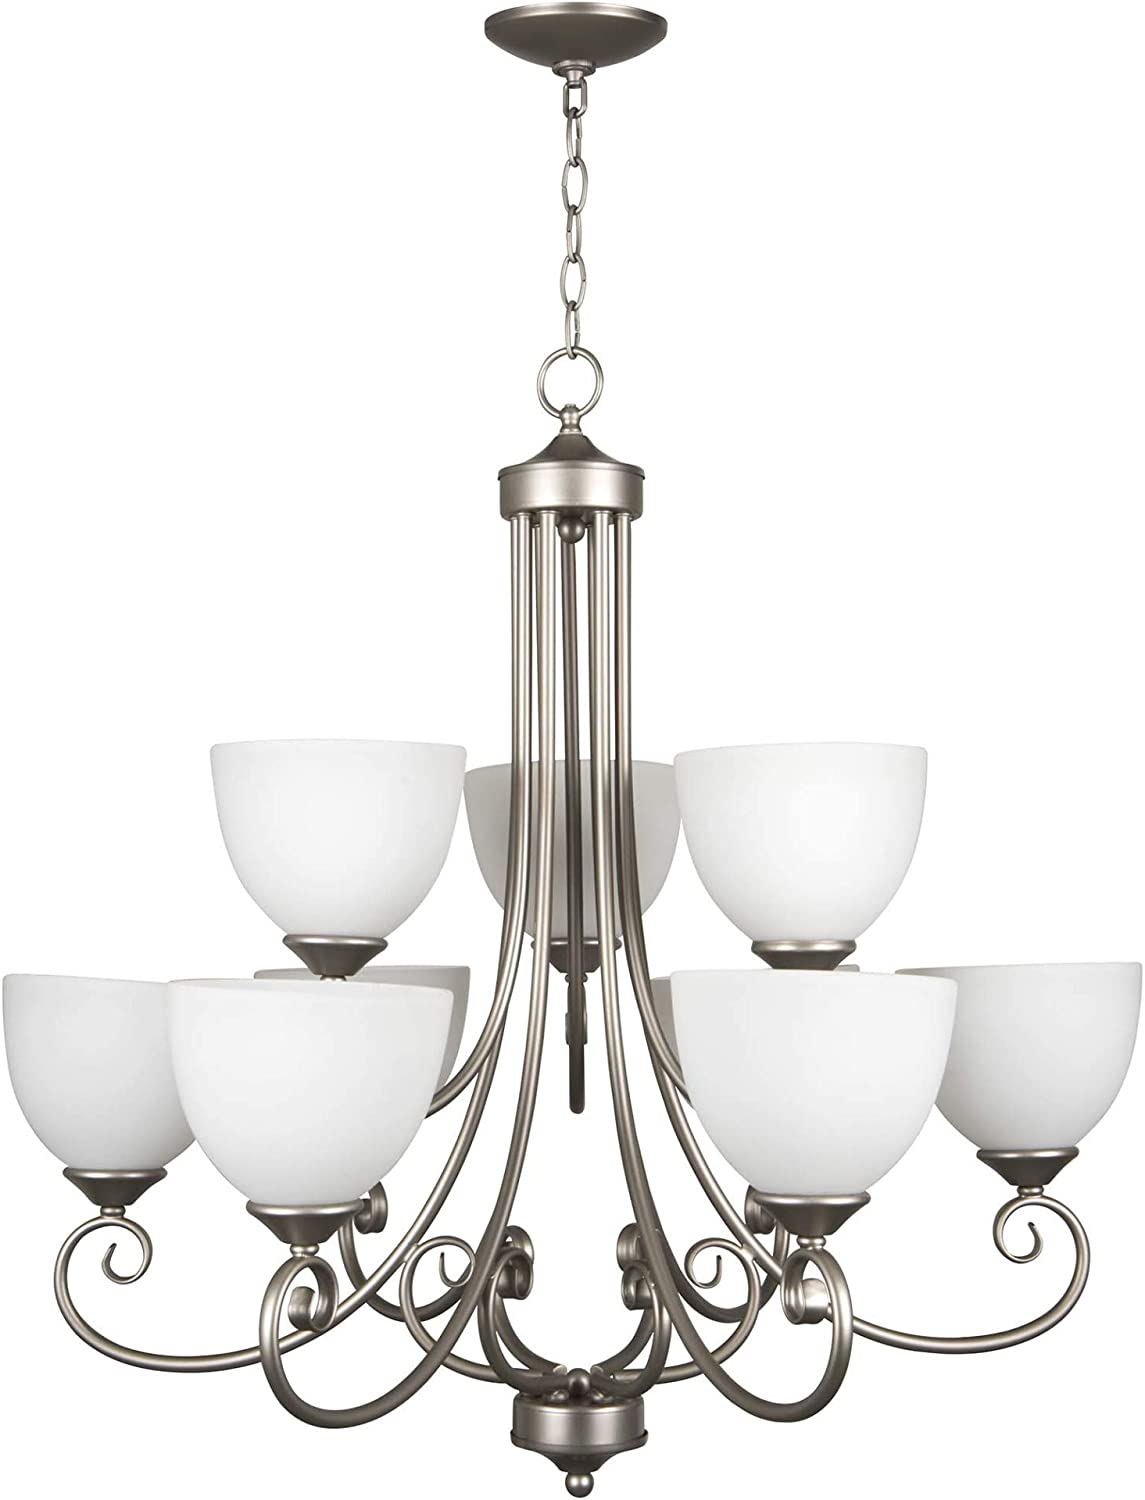 Craftmade 25329-SN 9 Light Chandelier